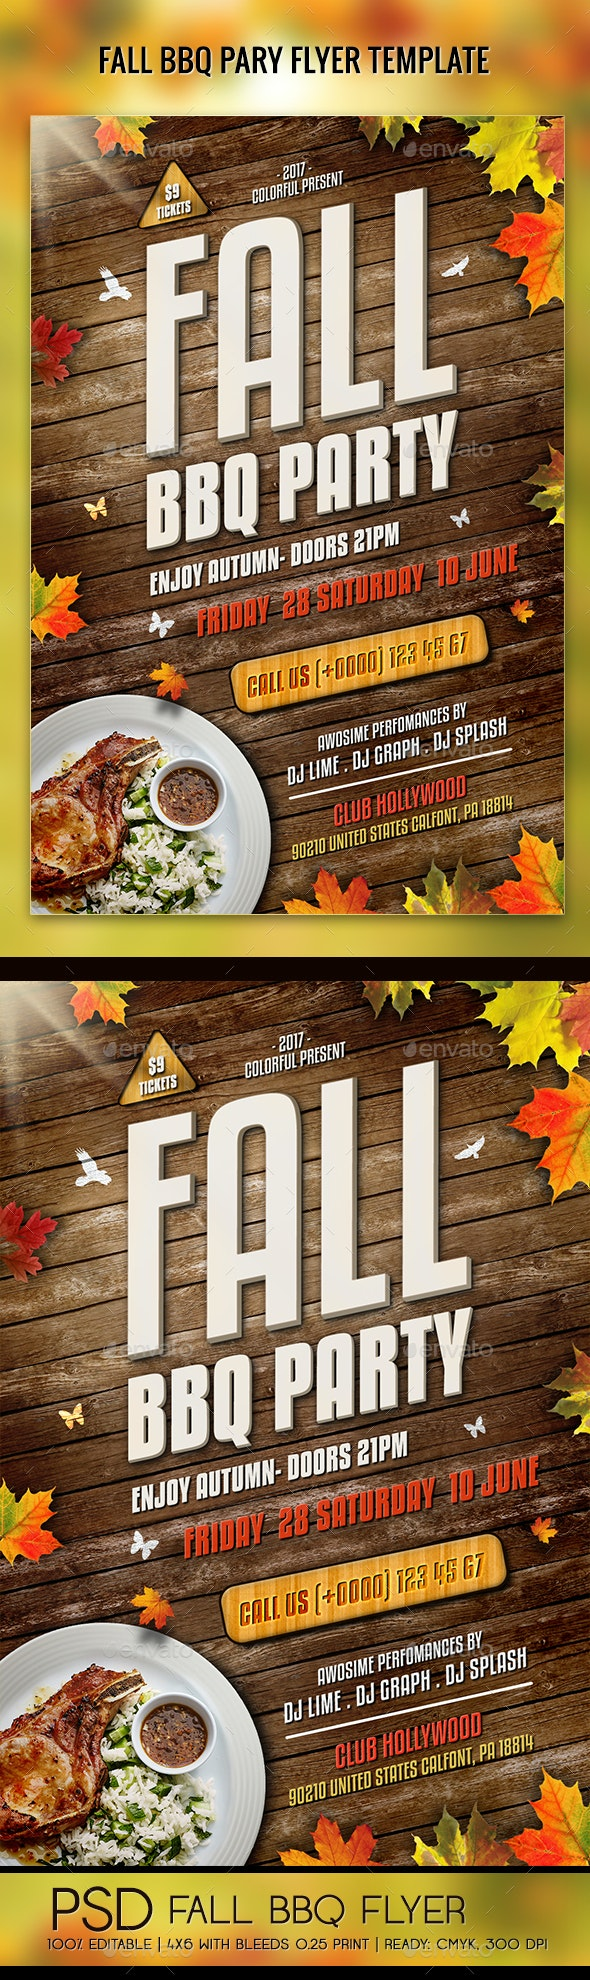 Fall Barbecue BBQ Party Flyer - Holidays Events